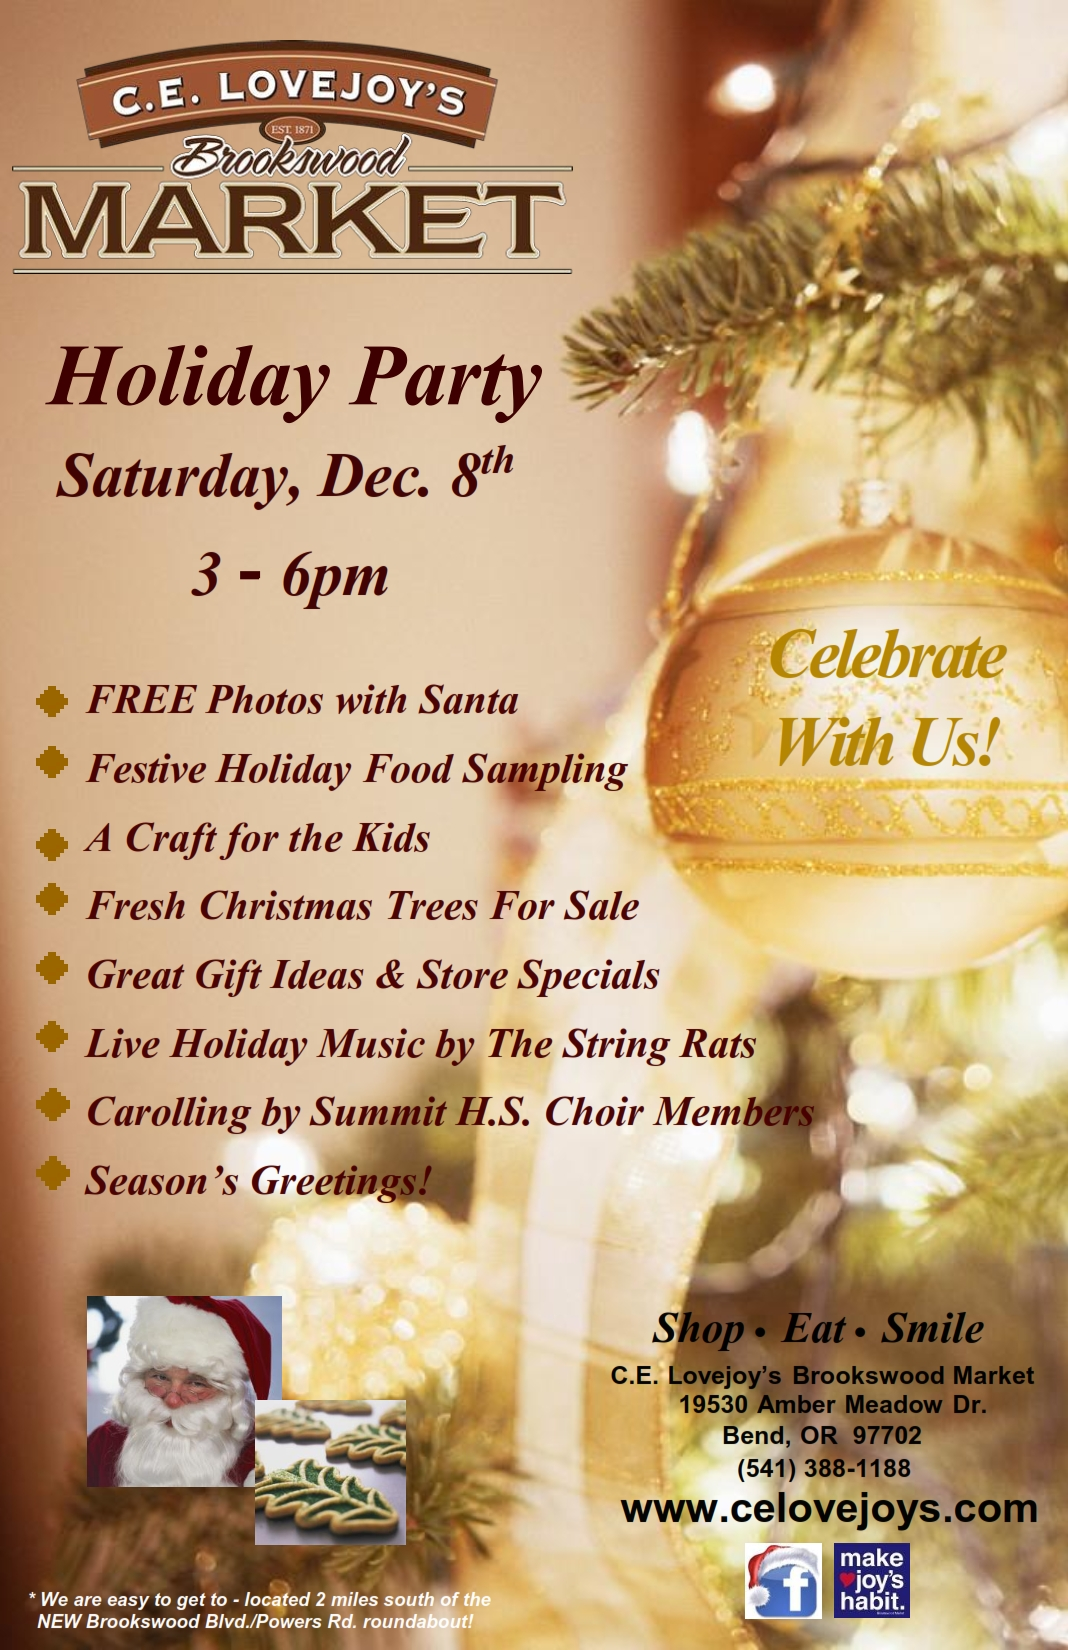 Lovejoys_Holiday_Party_Poster_-_Sat_Dec_8th_JPG